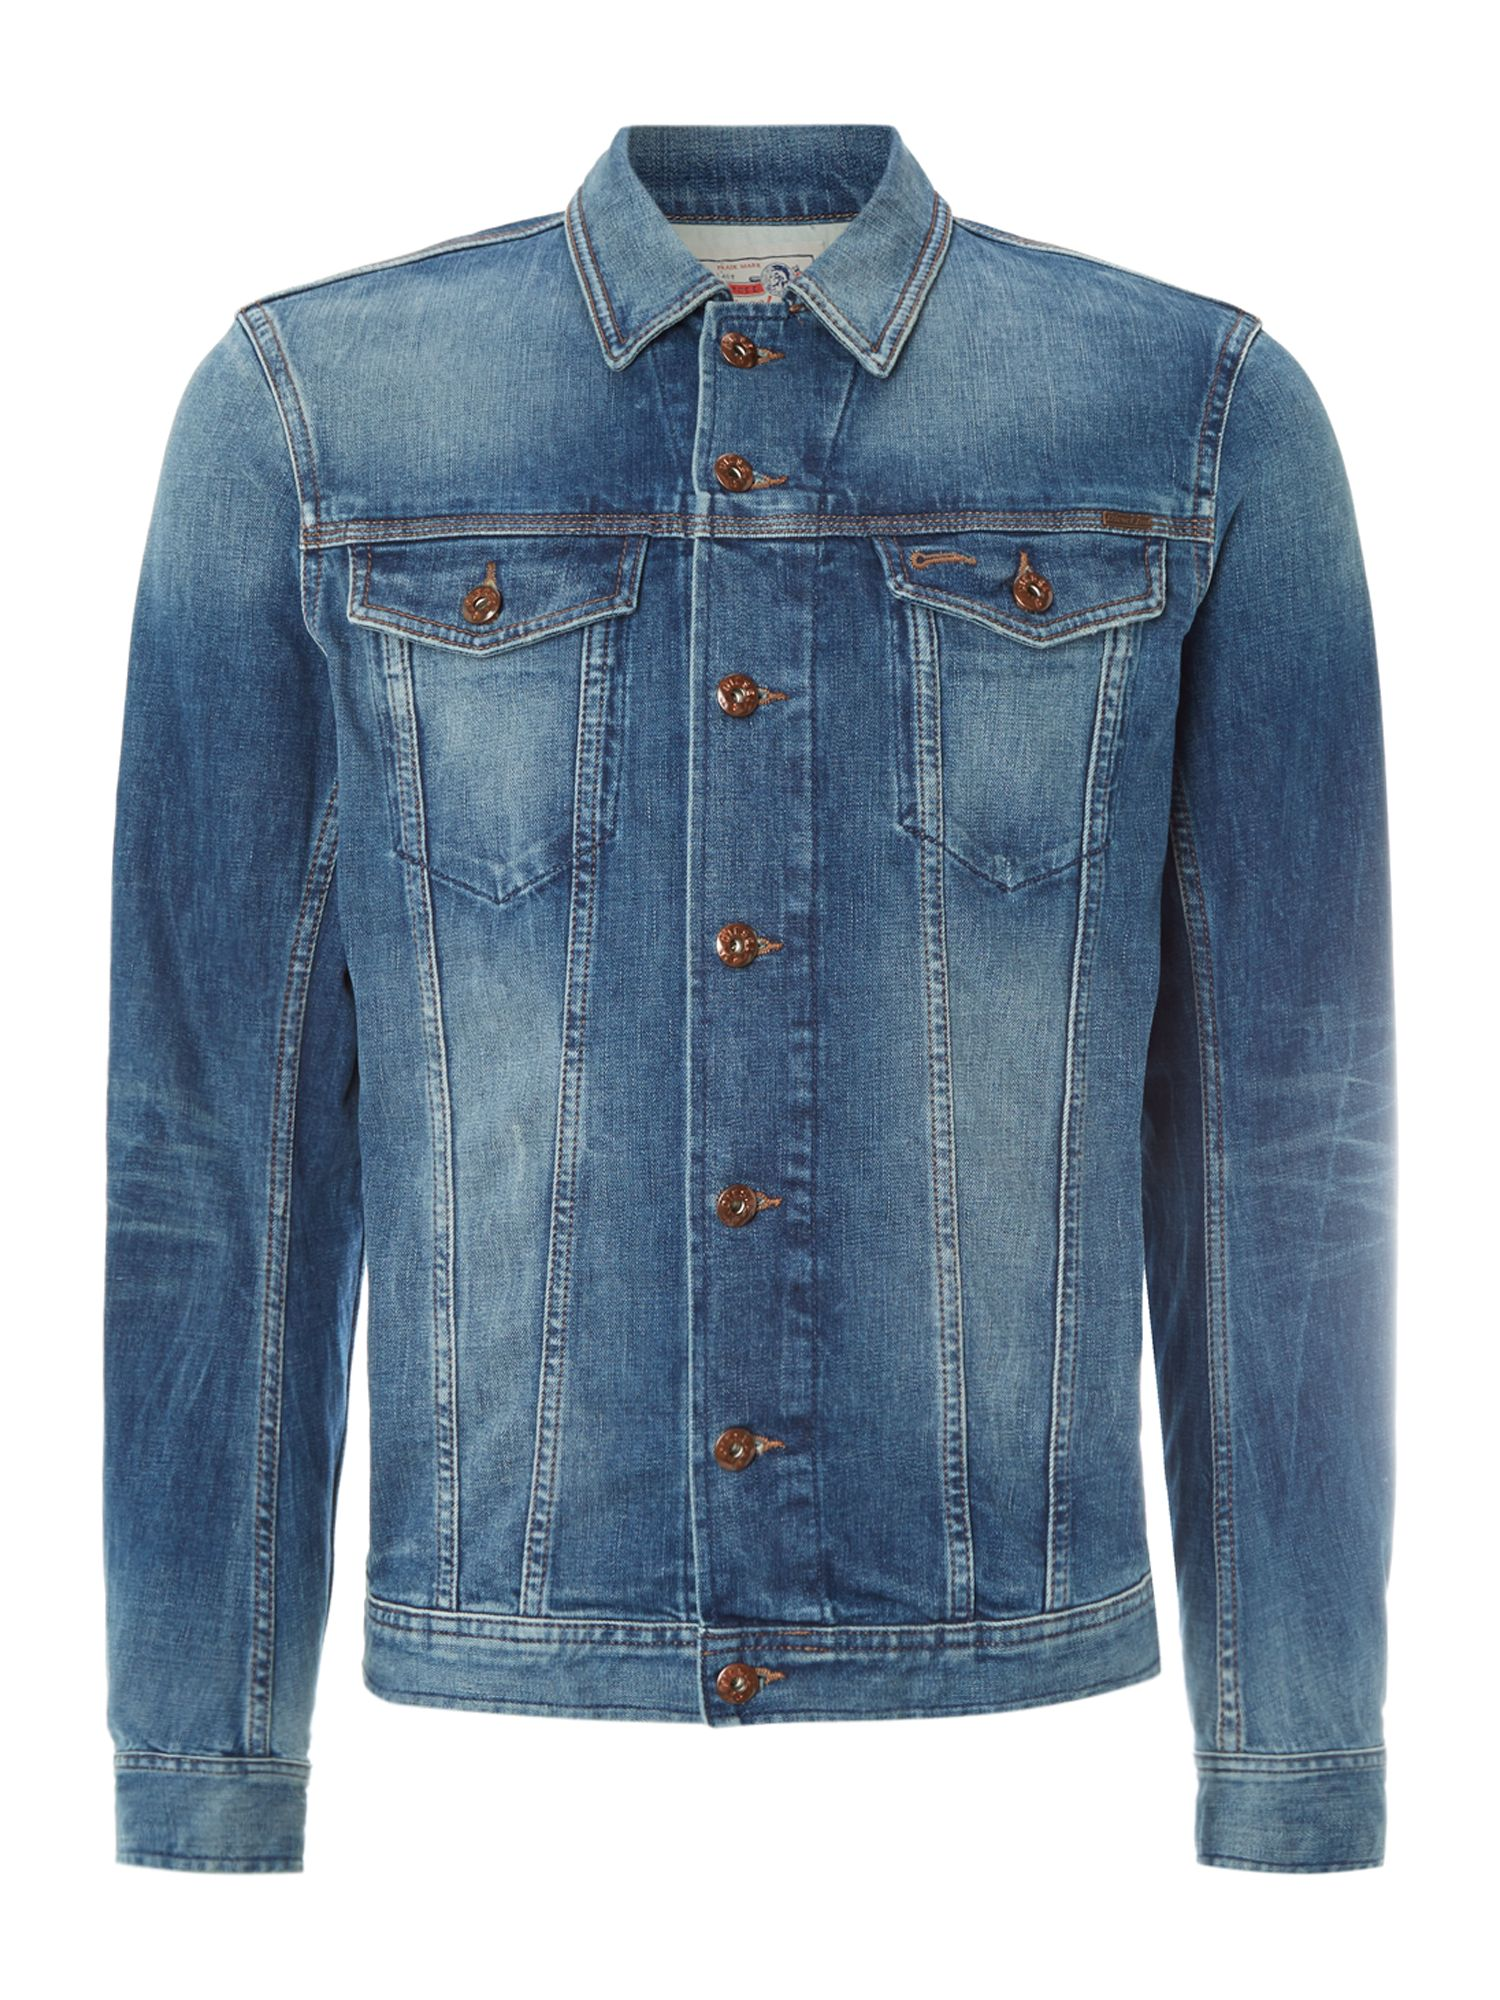 Two pocket denim jacket